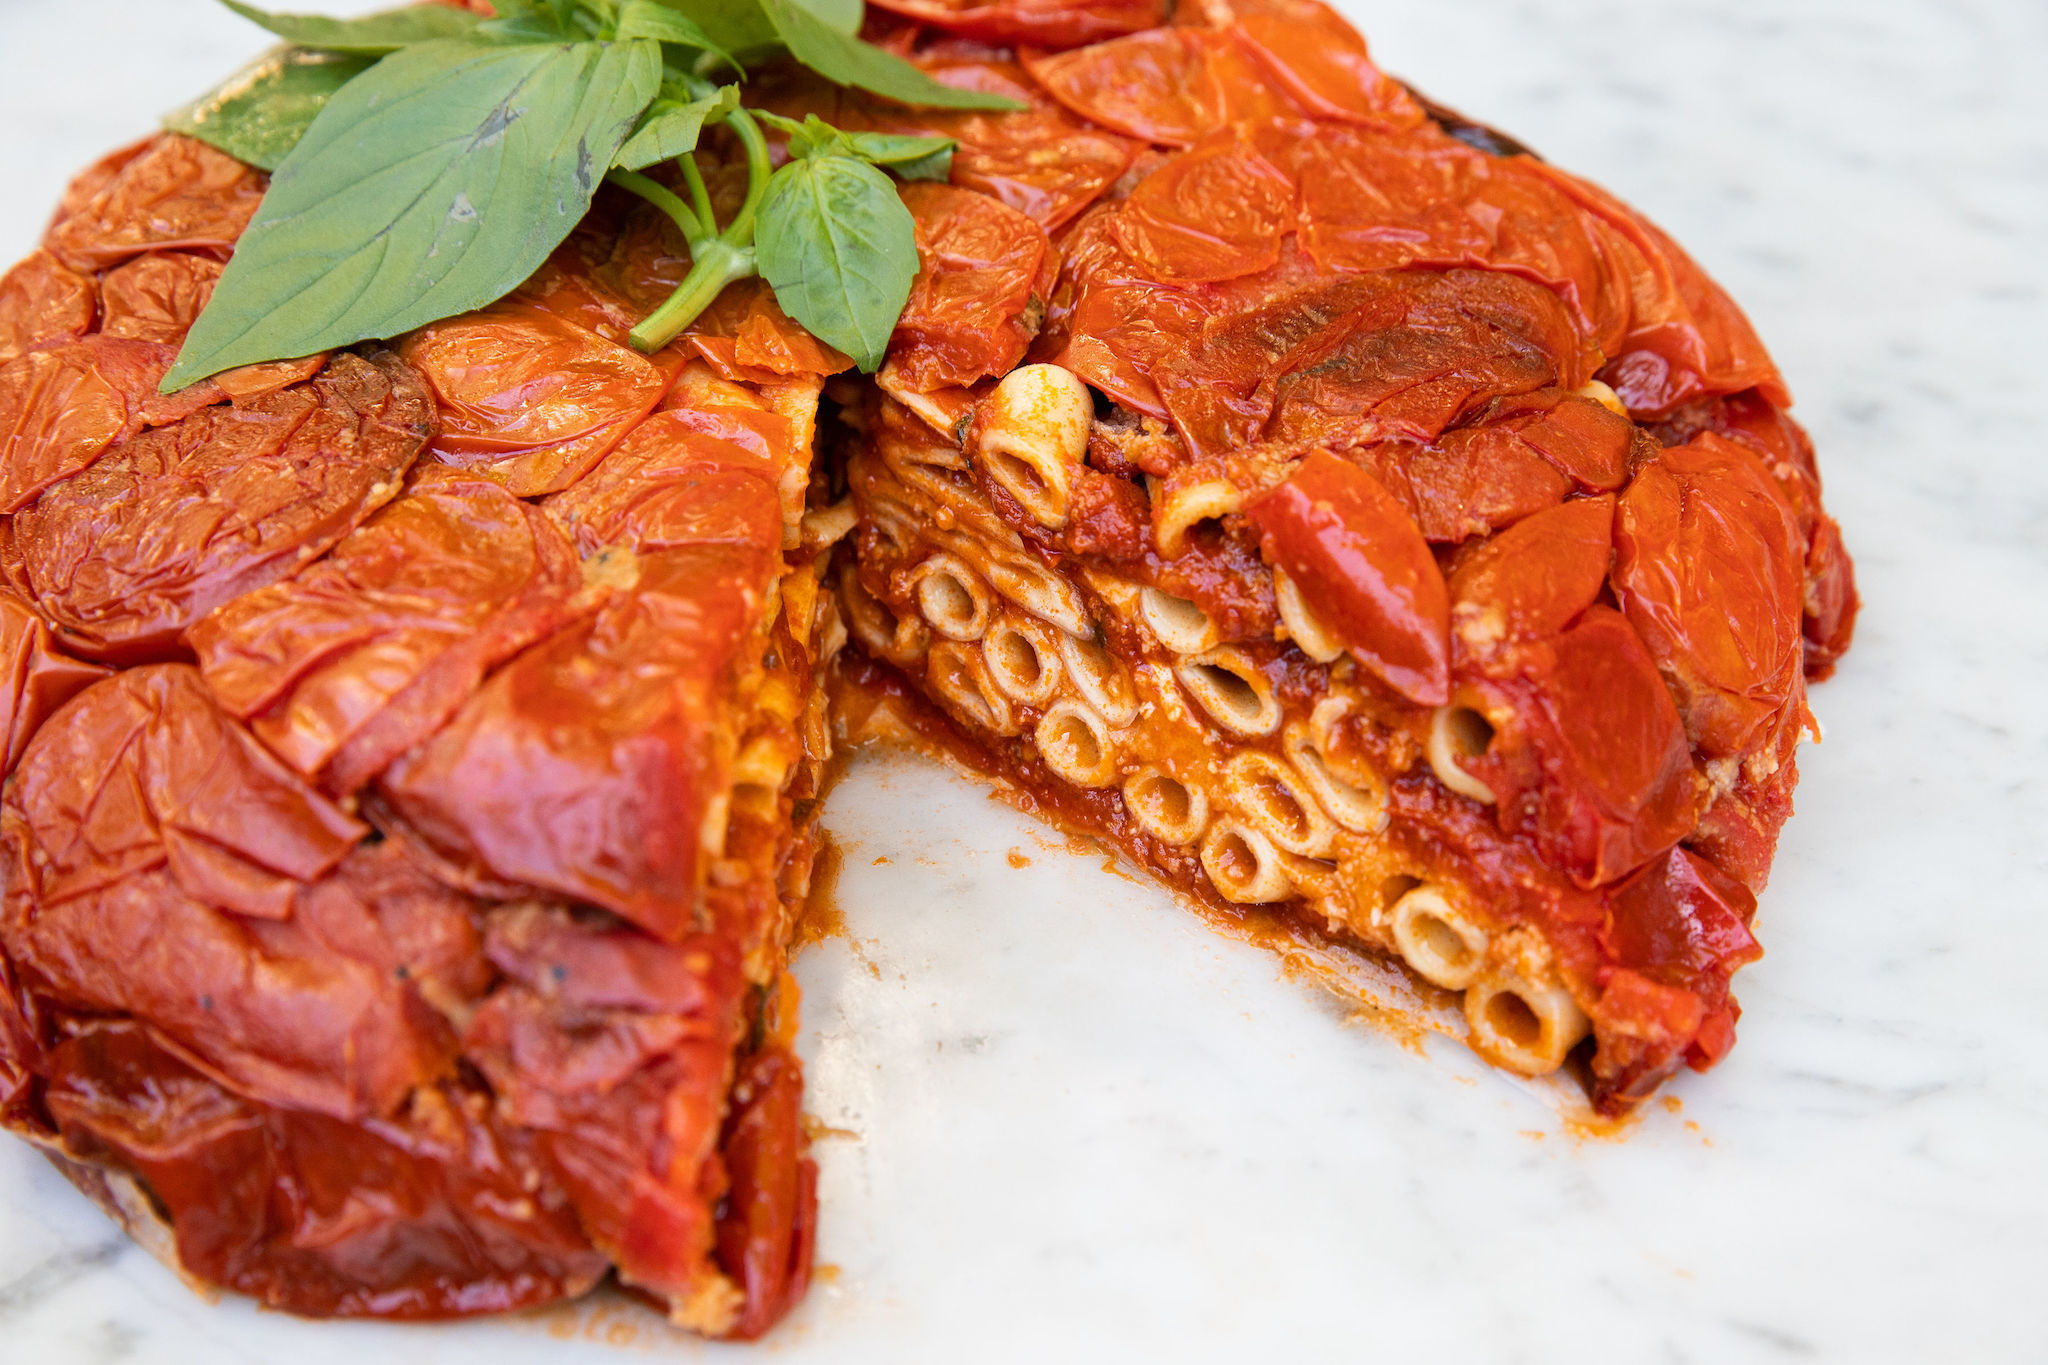 Dig into a pasta-cake at new West Village restaurant Pasta Al Forno